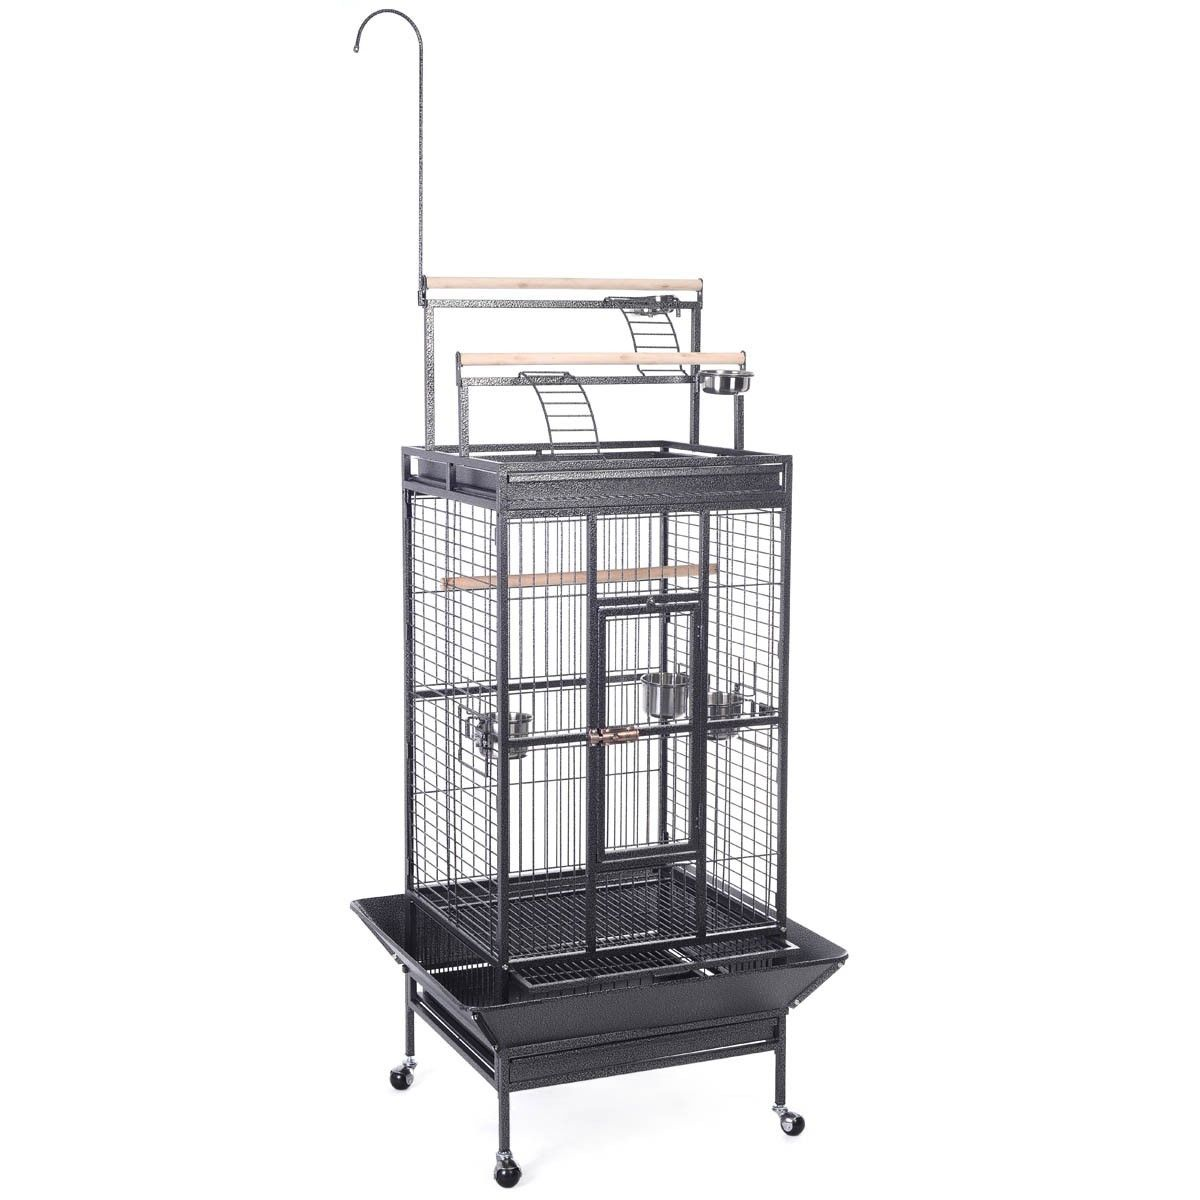 Costway Bird Cage Play Top Strong Iron Ladder Parrot Cockatoo Parakeet Pet Supply by Costway